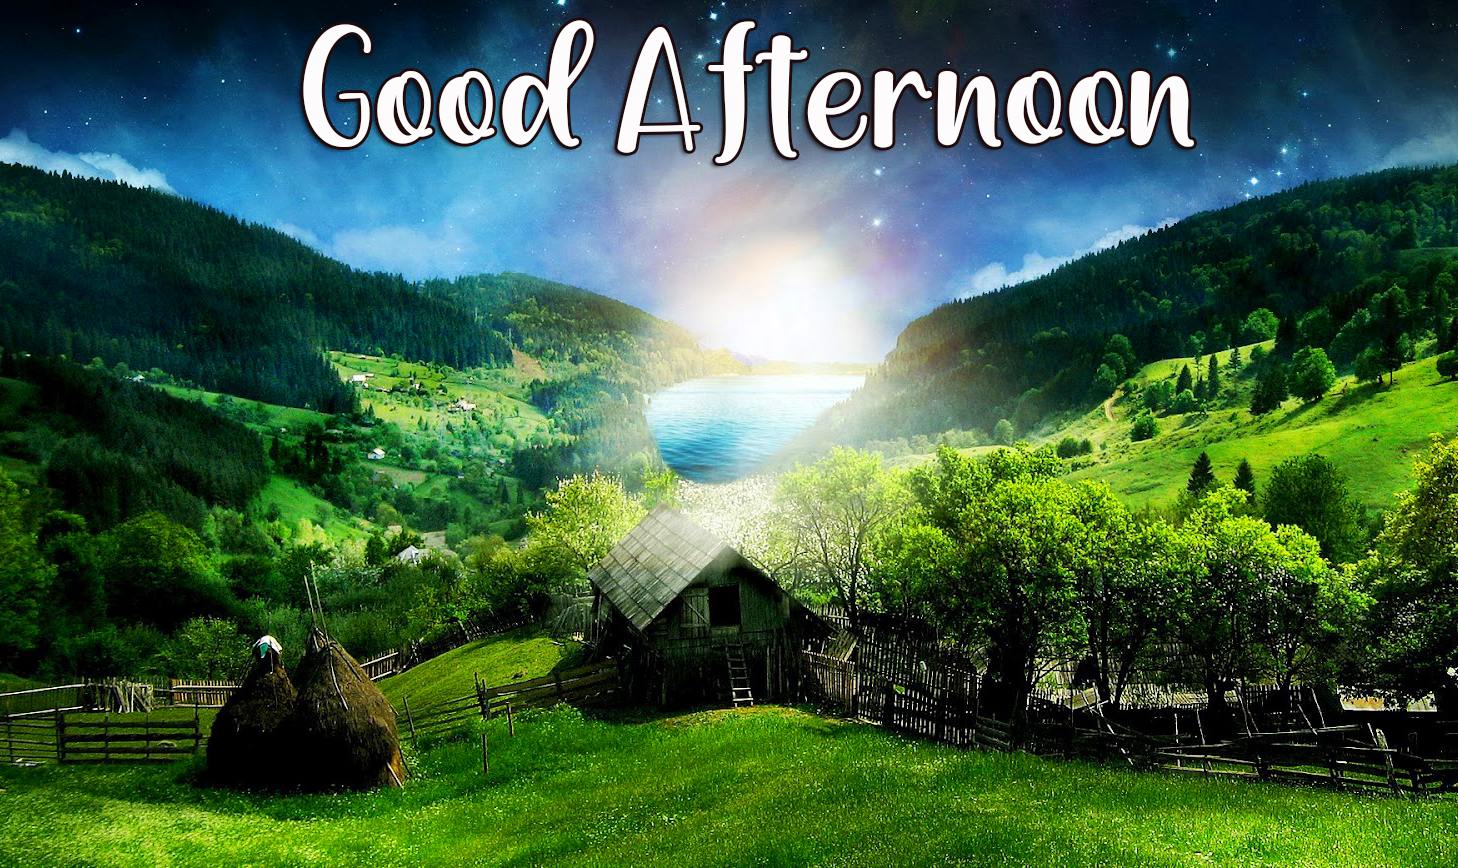 Good Afternoon Sunshine Nature Image